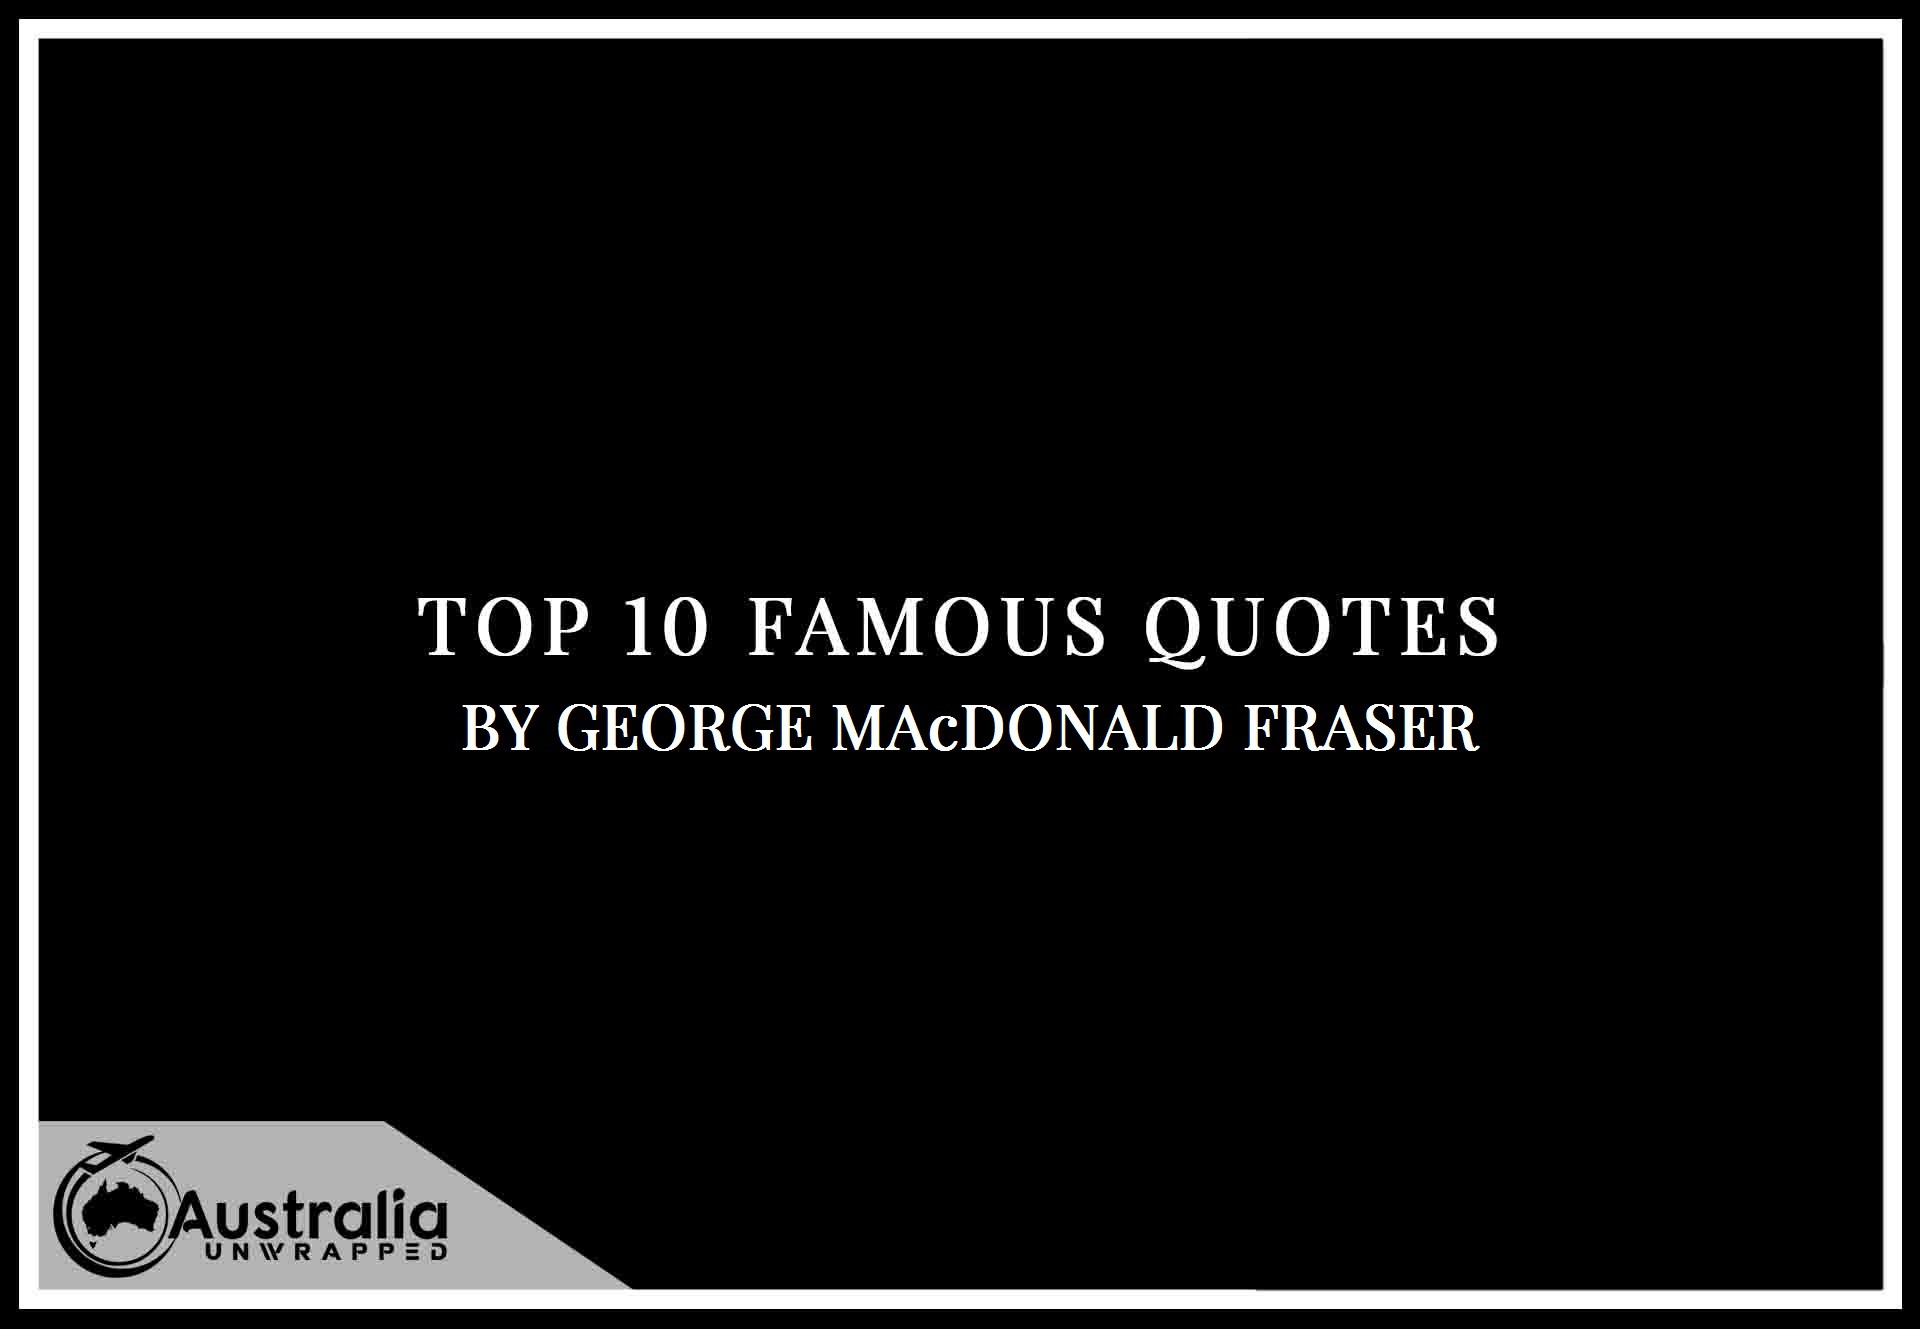 George MacDonald Fraser's Top 10 Popular and Famous Quotes